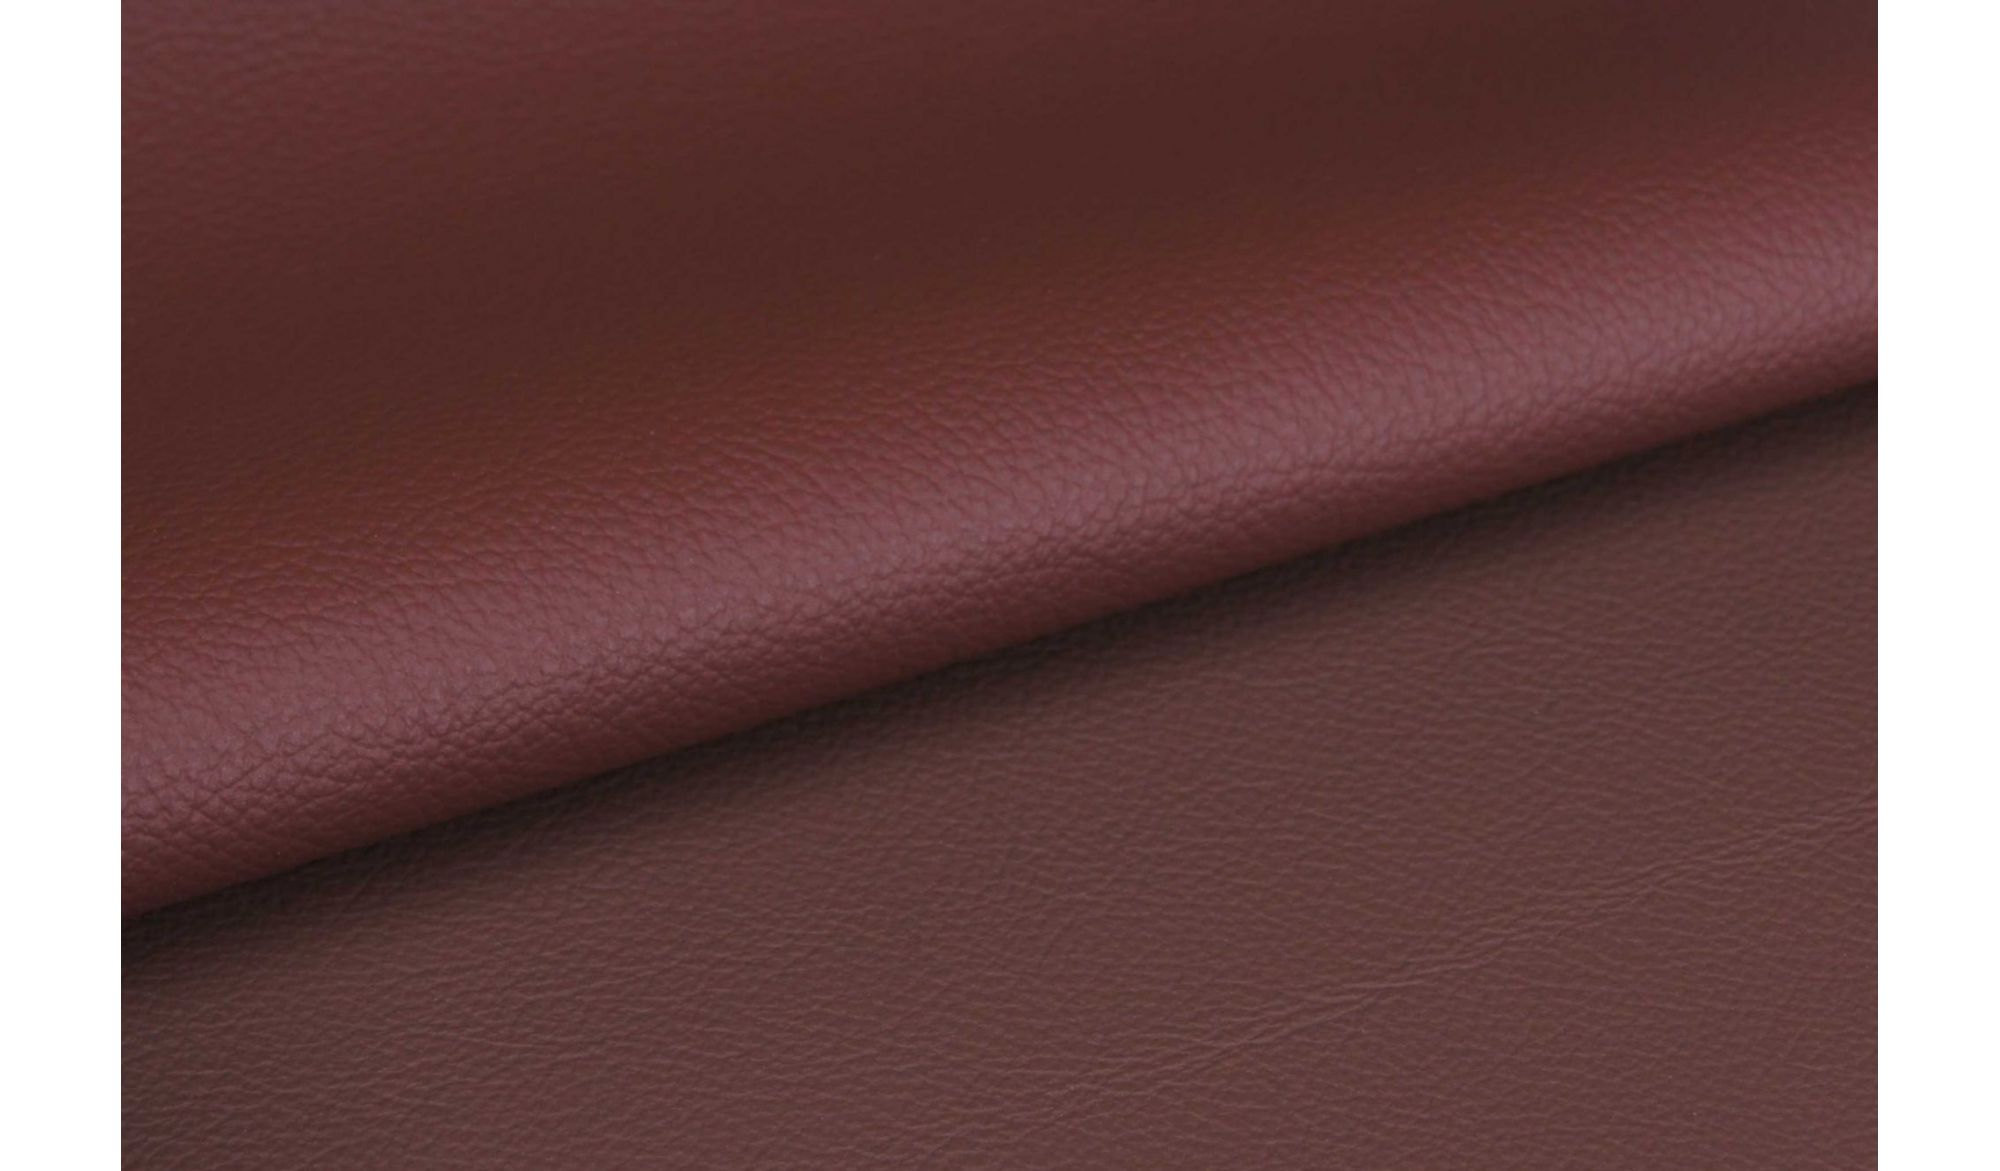 SKÓRA MAMMUT Schwarz 25599 - Leather alt_skory_kolor_schwarz 25599 Upholstery IMO Plain - Visualisation